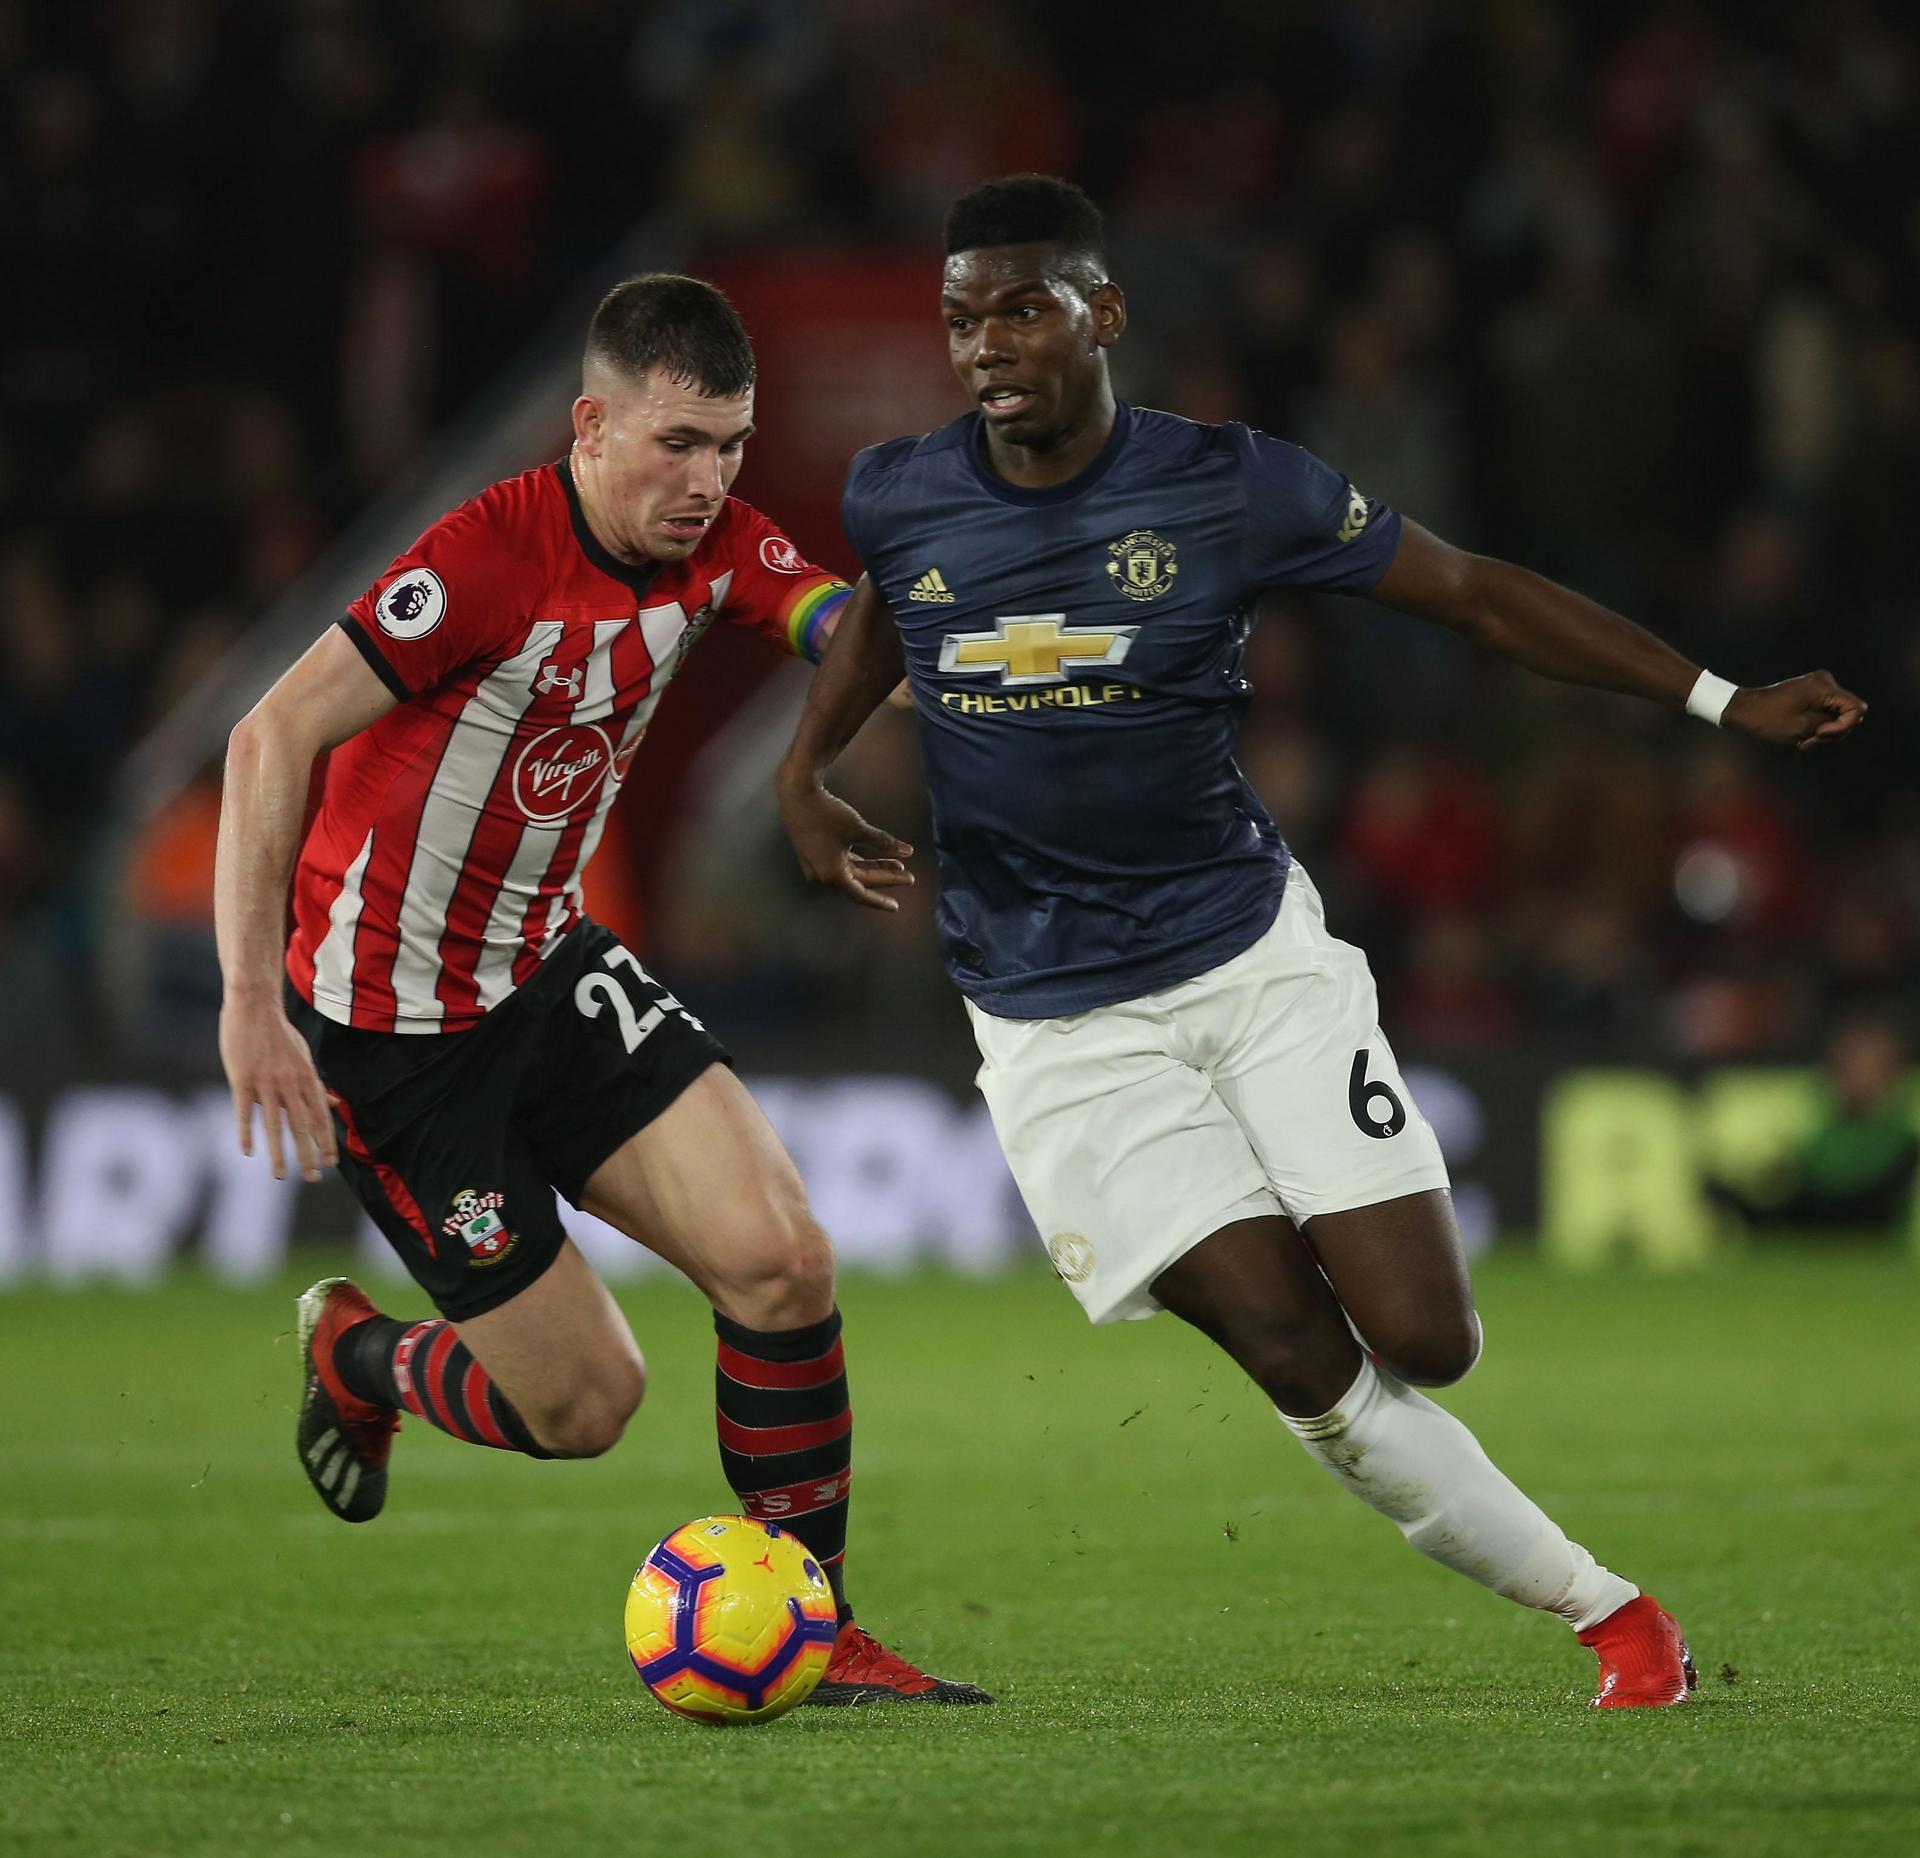 Paul Pogba on the ball against Southampton at St Mary's in the Premier League on 1 December 2019.